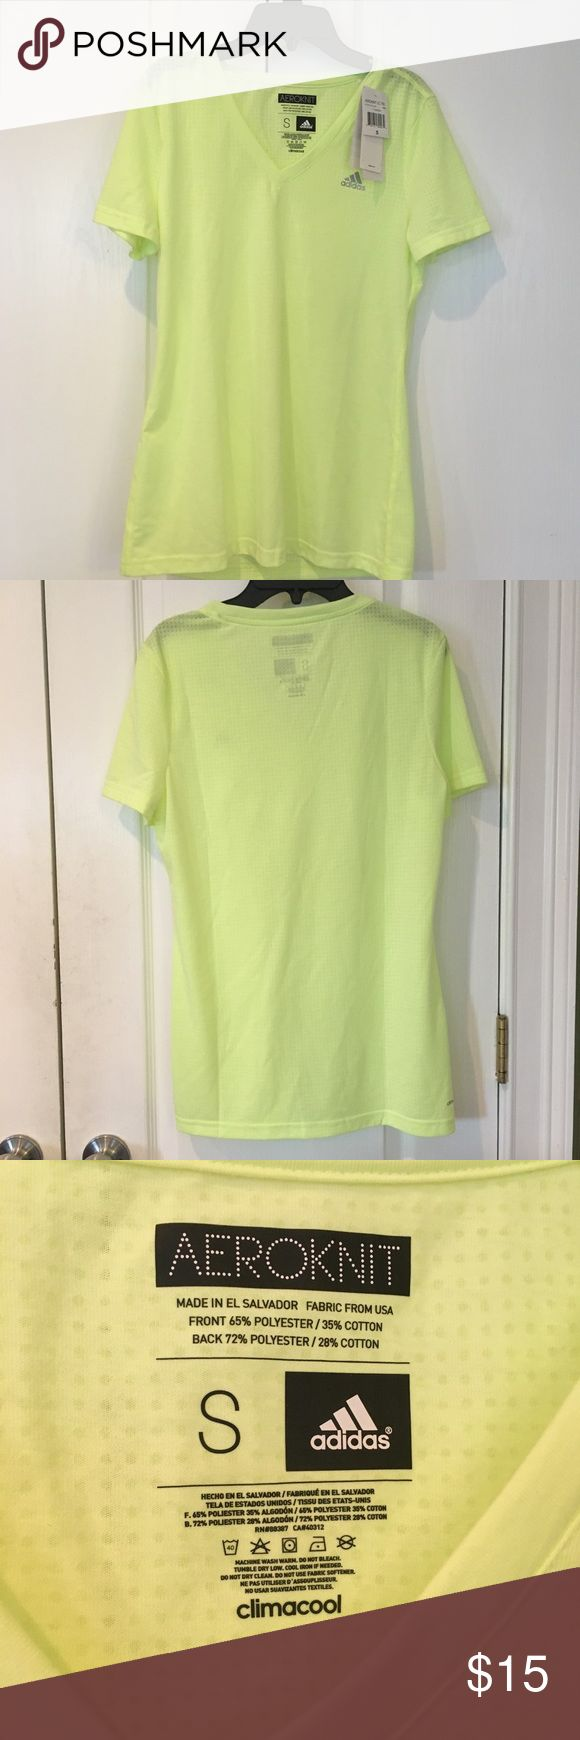 Adidas workout shirt Super cute adidas workout tee. Bright neon yellow color. Perfect for running or any activity. New with tags and perfect condition. Free gift with every purchase!  Please ask questions and make offers!!! adidas Tops Tees - Short Sleeve